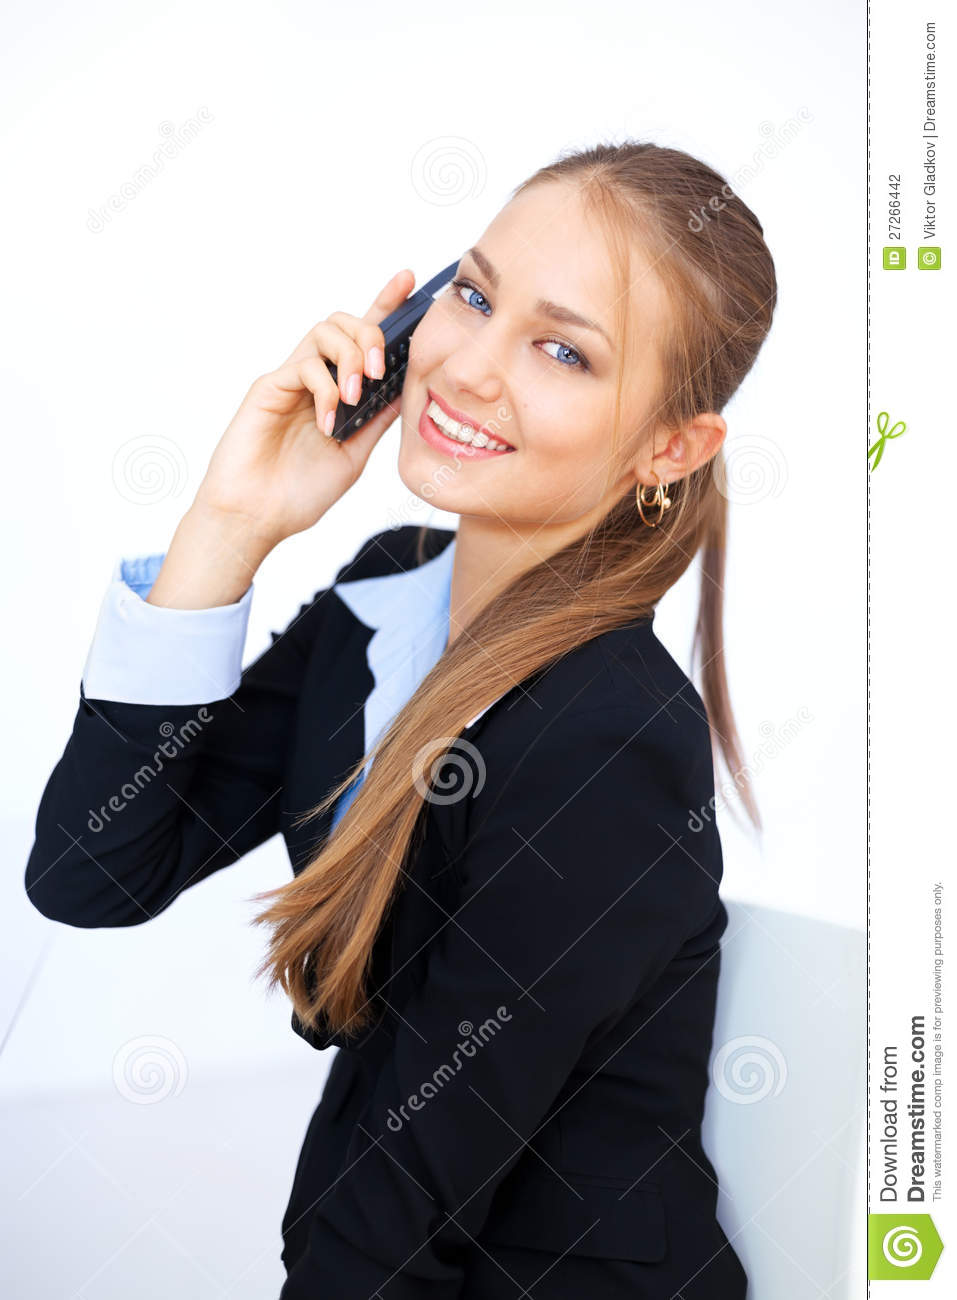 how to get a business cell phone